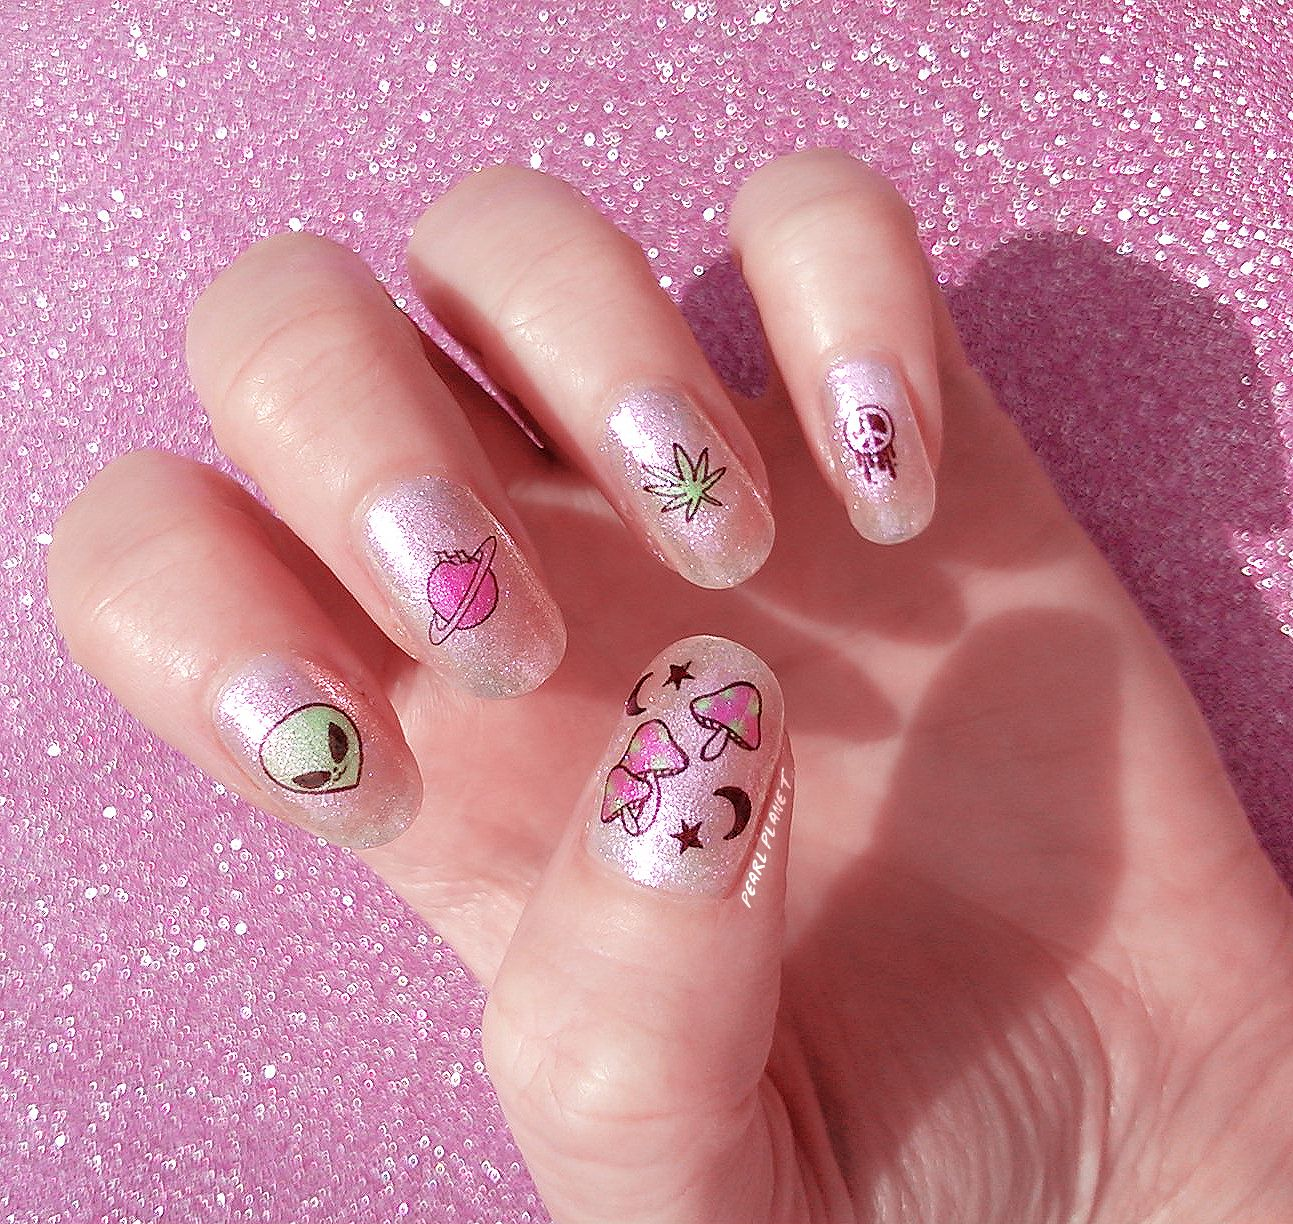 Pin by Katie Johnson on Nails | Light colored nails, Nail ...